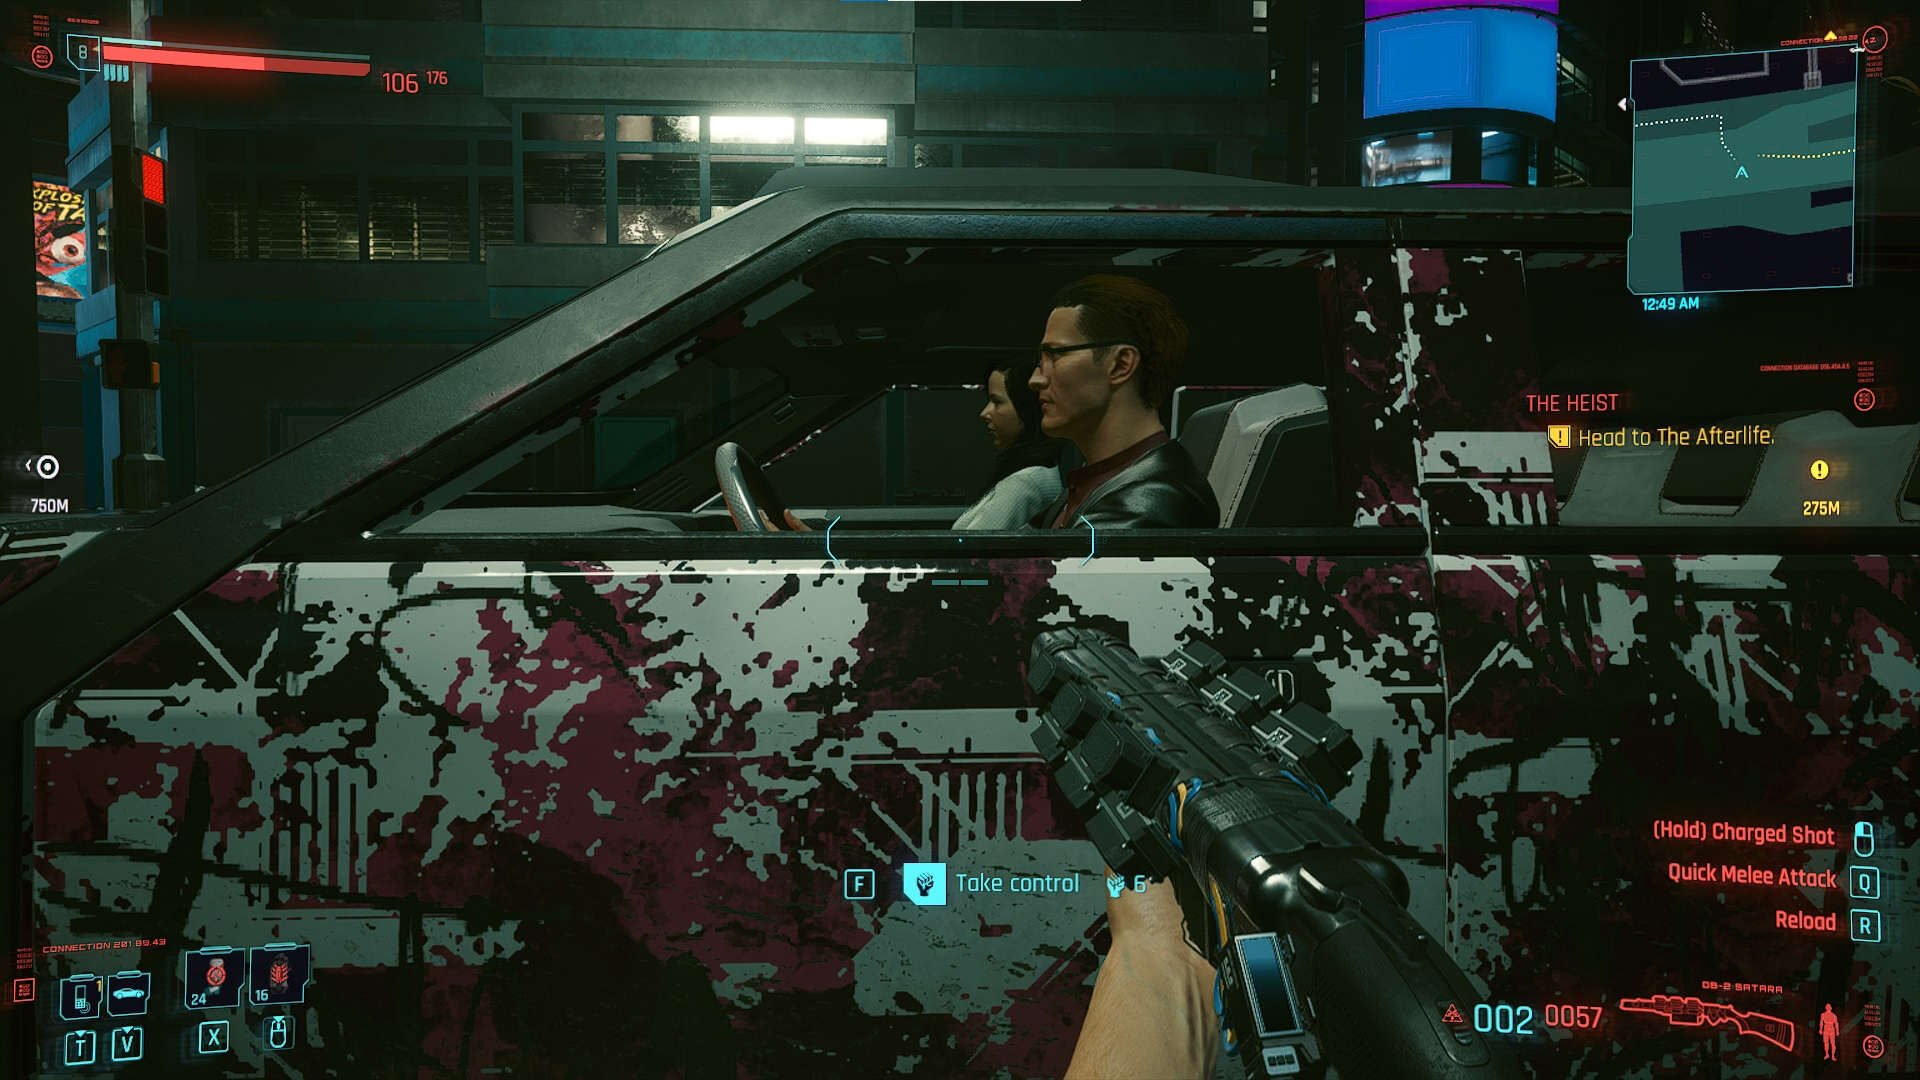 Cyberpunk 2077 Vehiclescar hijacking attribute request on the car door